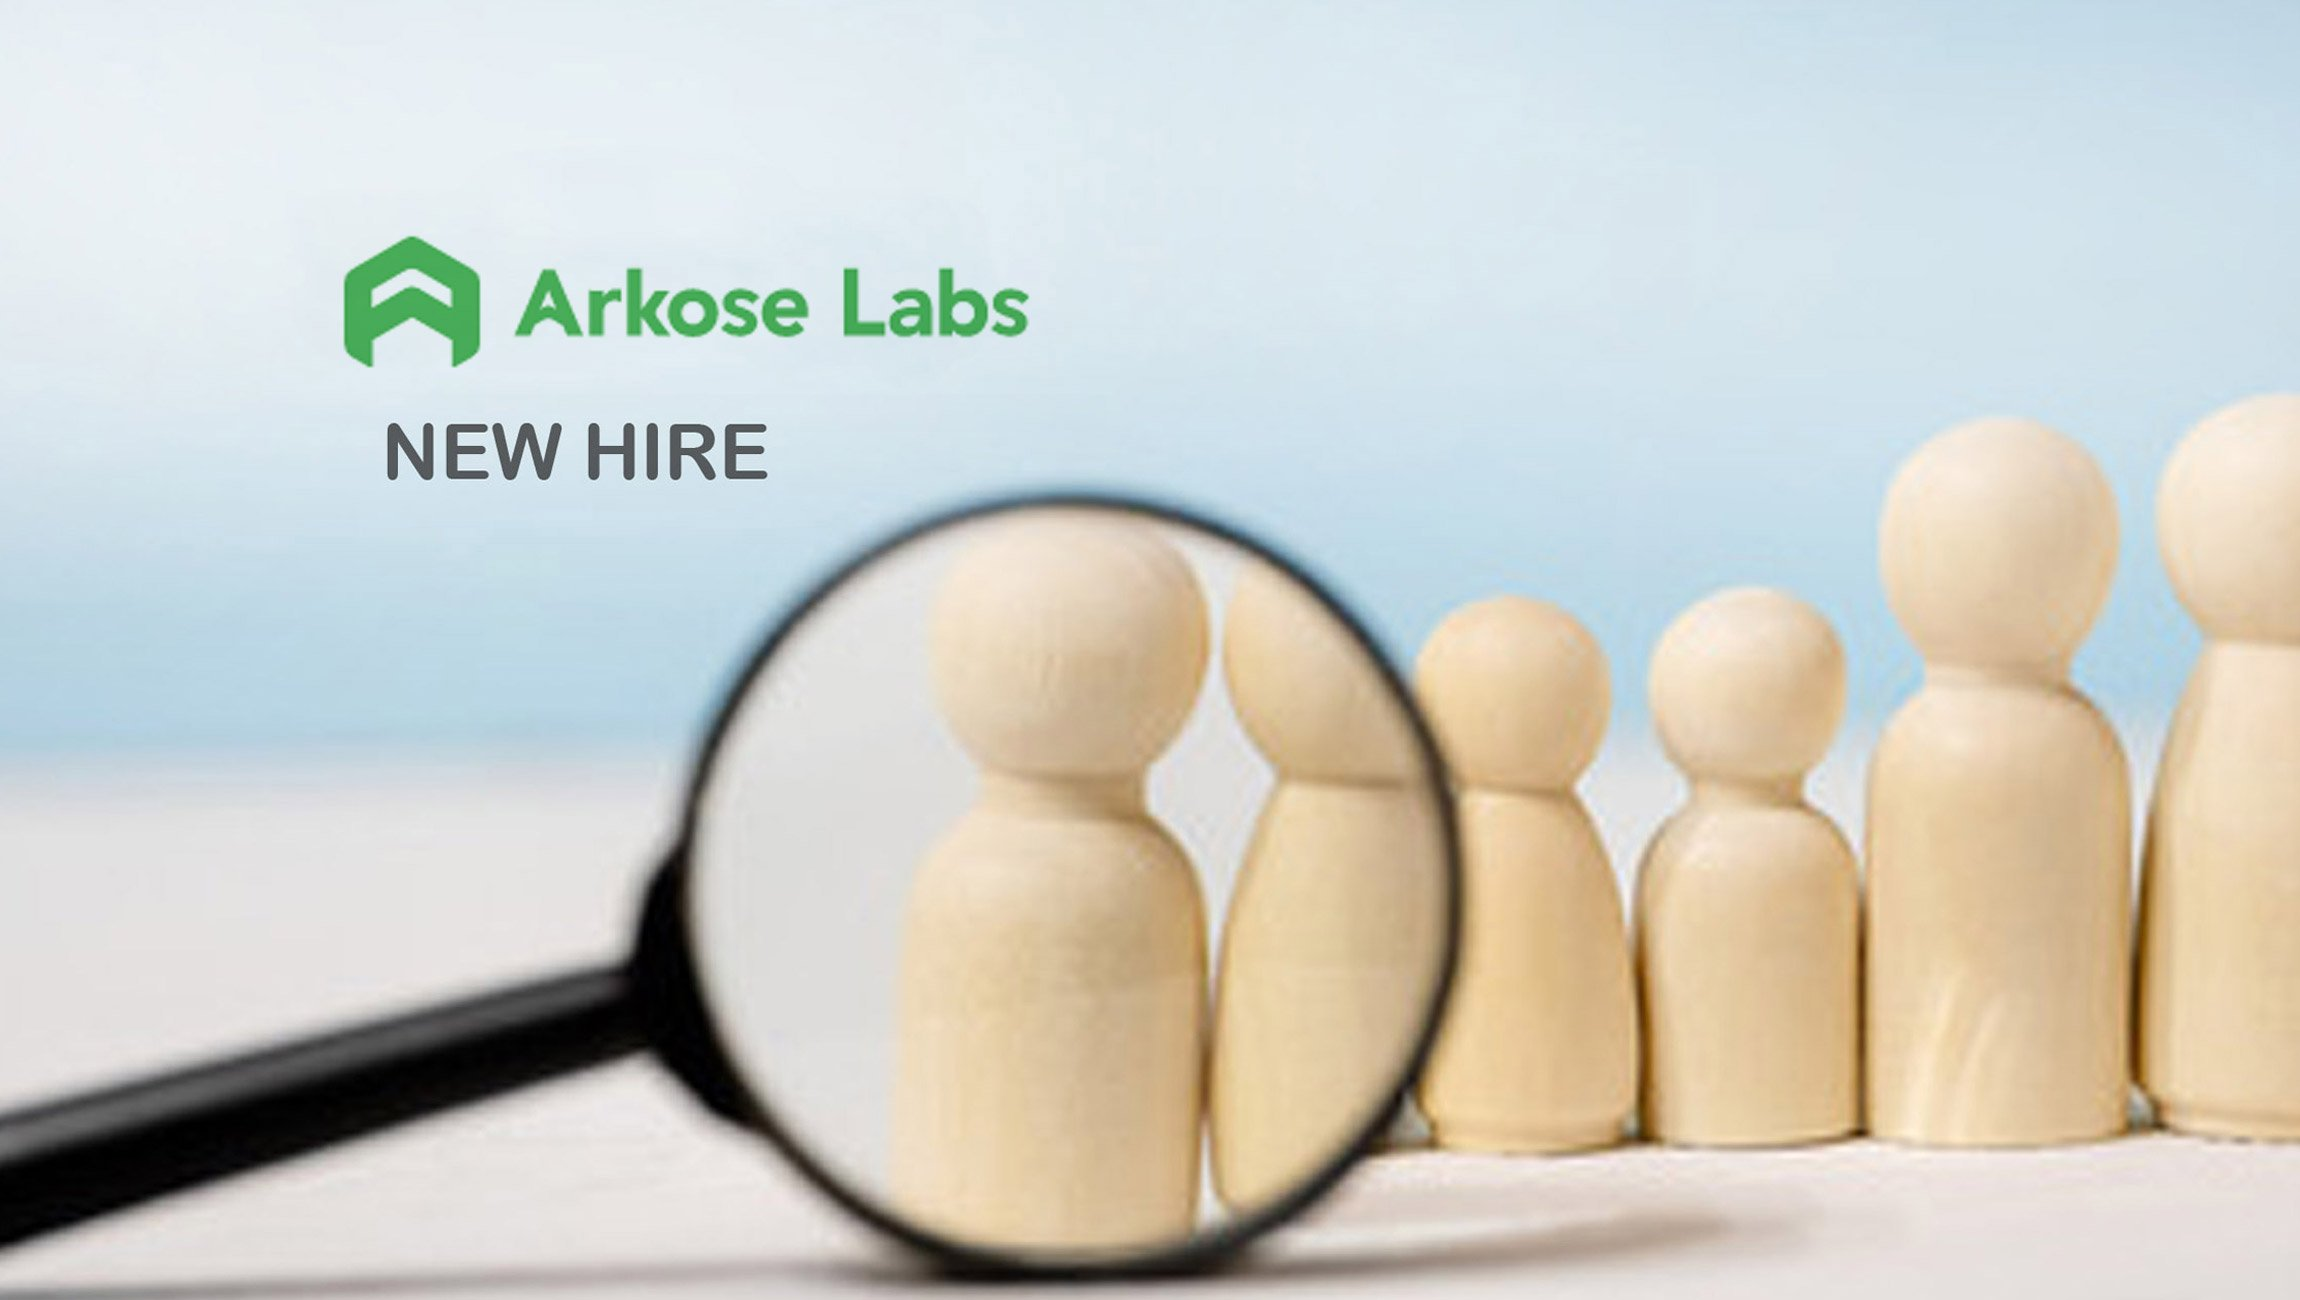 Ashish Jain Joins Arkose Labs' Leadership Team as Chief Product Officer